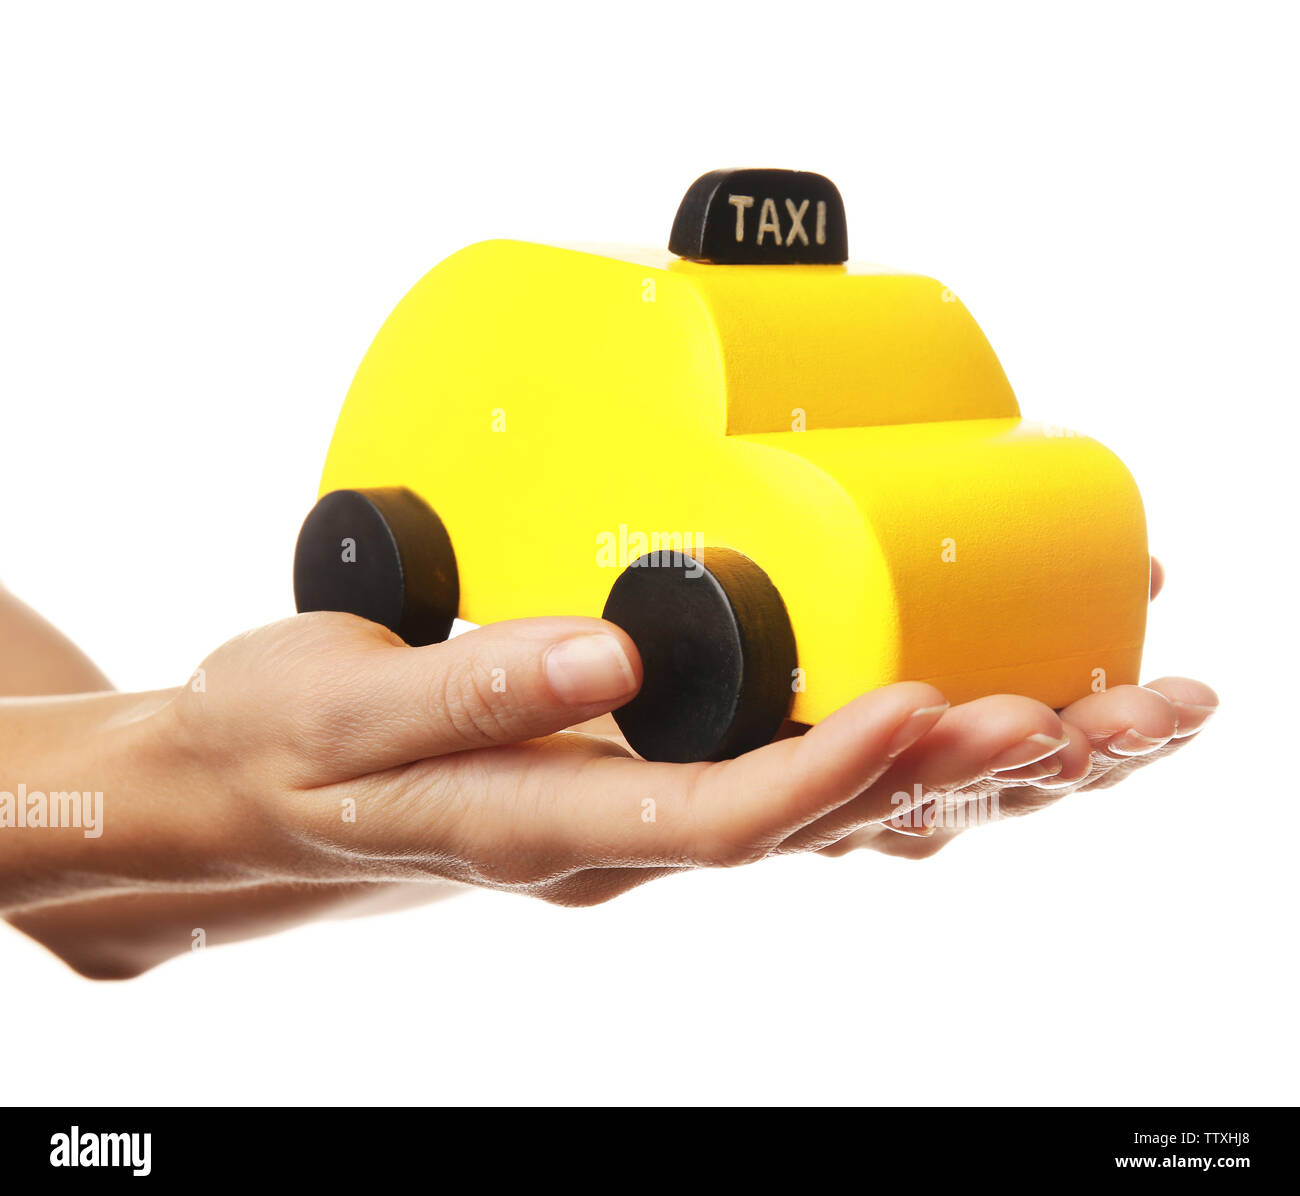 Woman holding yellow toy taxi on white background - Stock Image